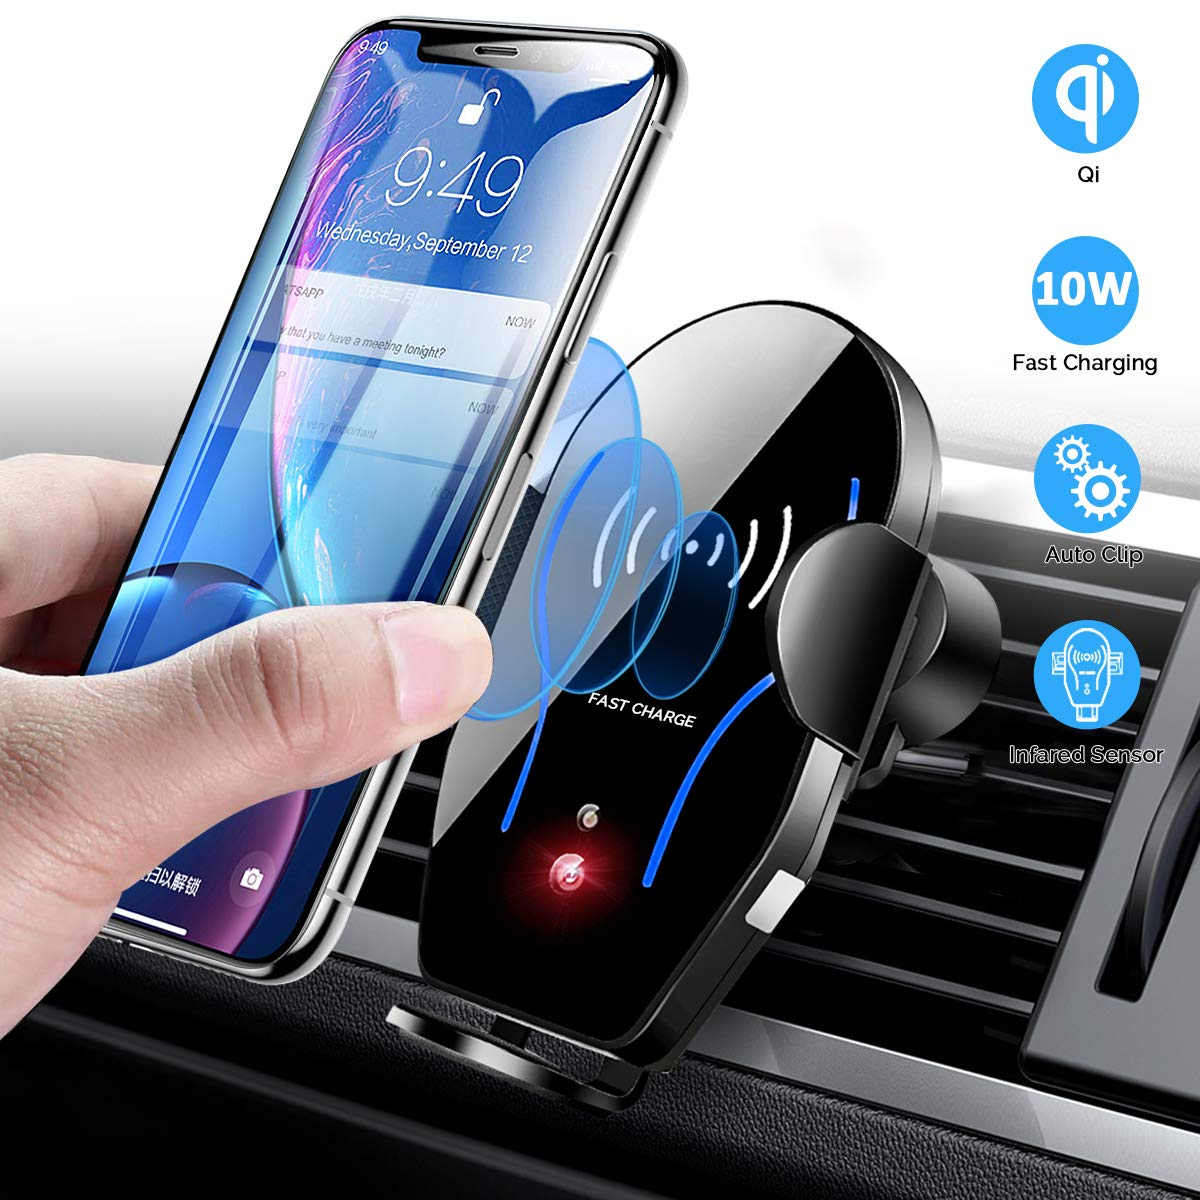 Wireless Car Charger Mount, Mikikin Auto-Clamping Qi 10W 7.5W Fast Charging Car Phone Holder Air Vent Compatible with iPhone X/XR/Xs/Xs Max/8/8 Plus, Samsung S6/S7/S8/S9 Edge+, Note 7/Note 8 & More